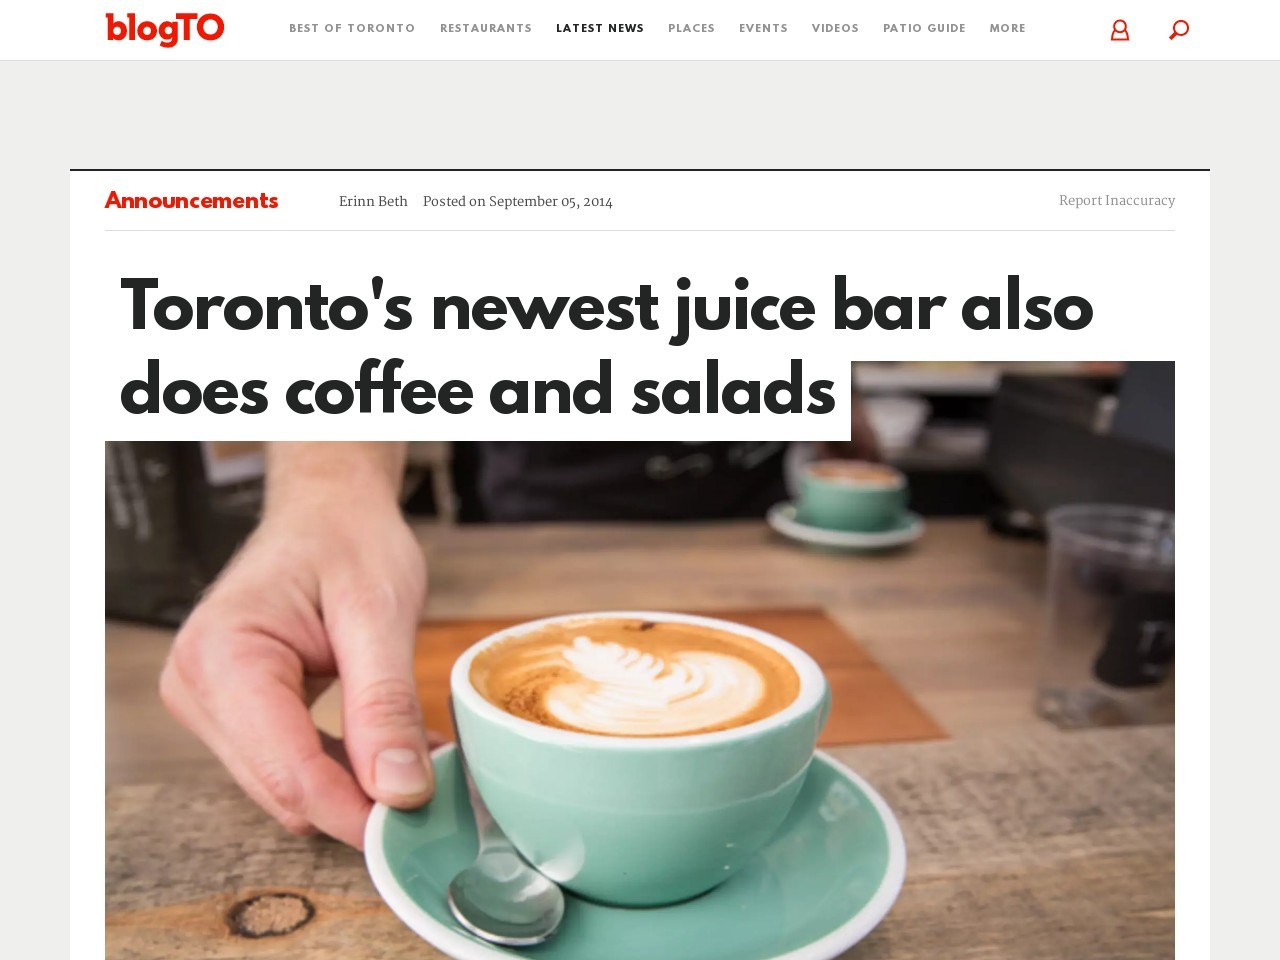 Toronto's newest juice bar also does coffee and salads